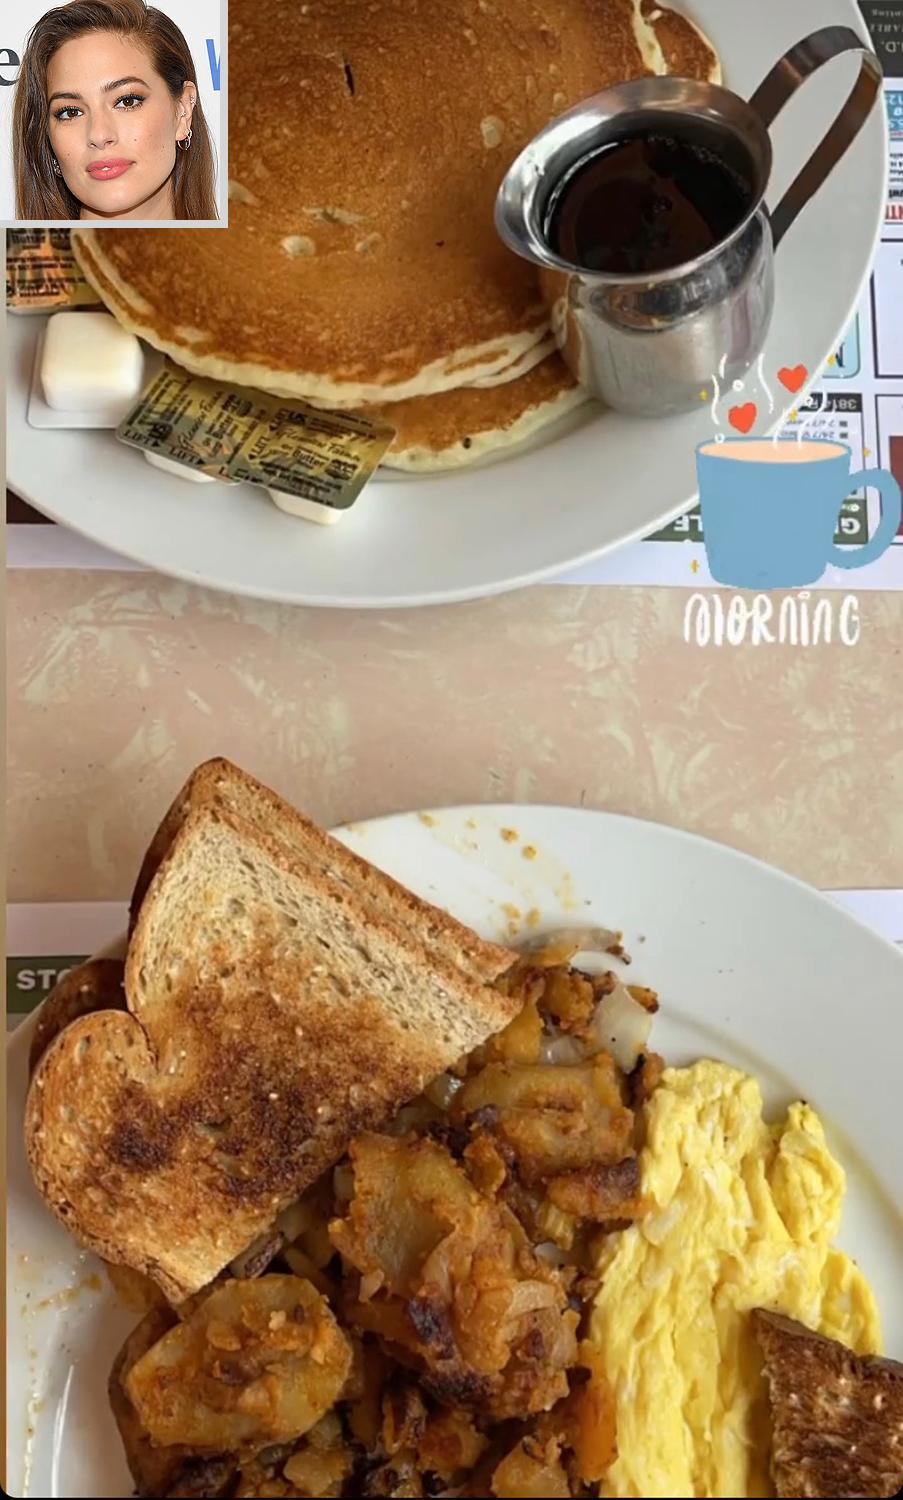 """<p>The model had a true <a href=""""https://www.instagram.com/ashleygraham/"""" rel=""""nofollow noopener"""" target=""""_blank"""" data-ylk=""""slk:diner-style breakfast"""" class=""""link rapid-noclick-resp"""">diner-style breakfast</a> of pancakes and syrup, eggs, toast, and home fries. </p>"""